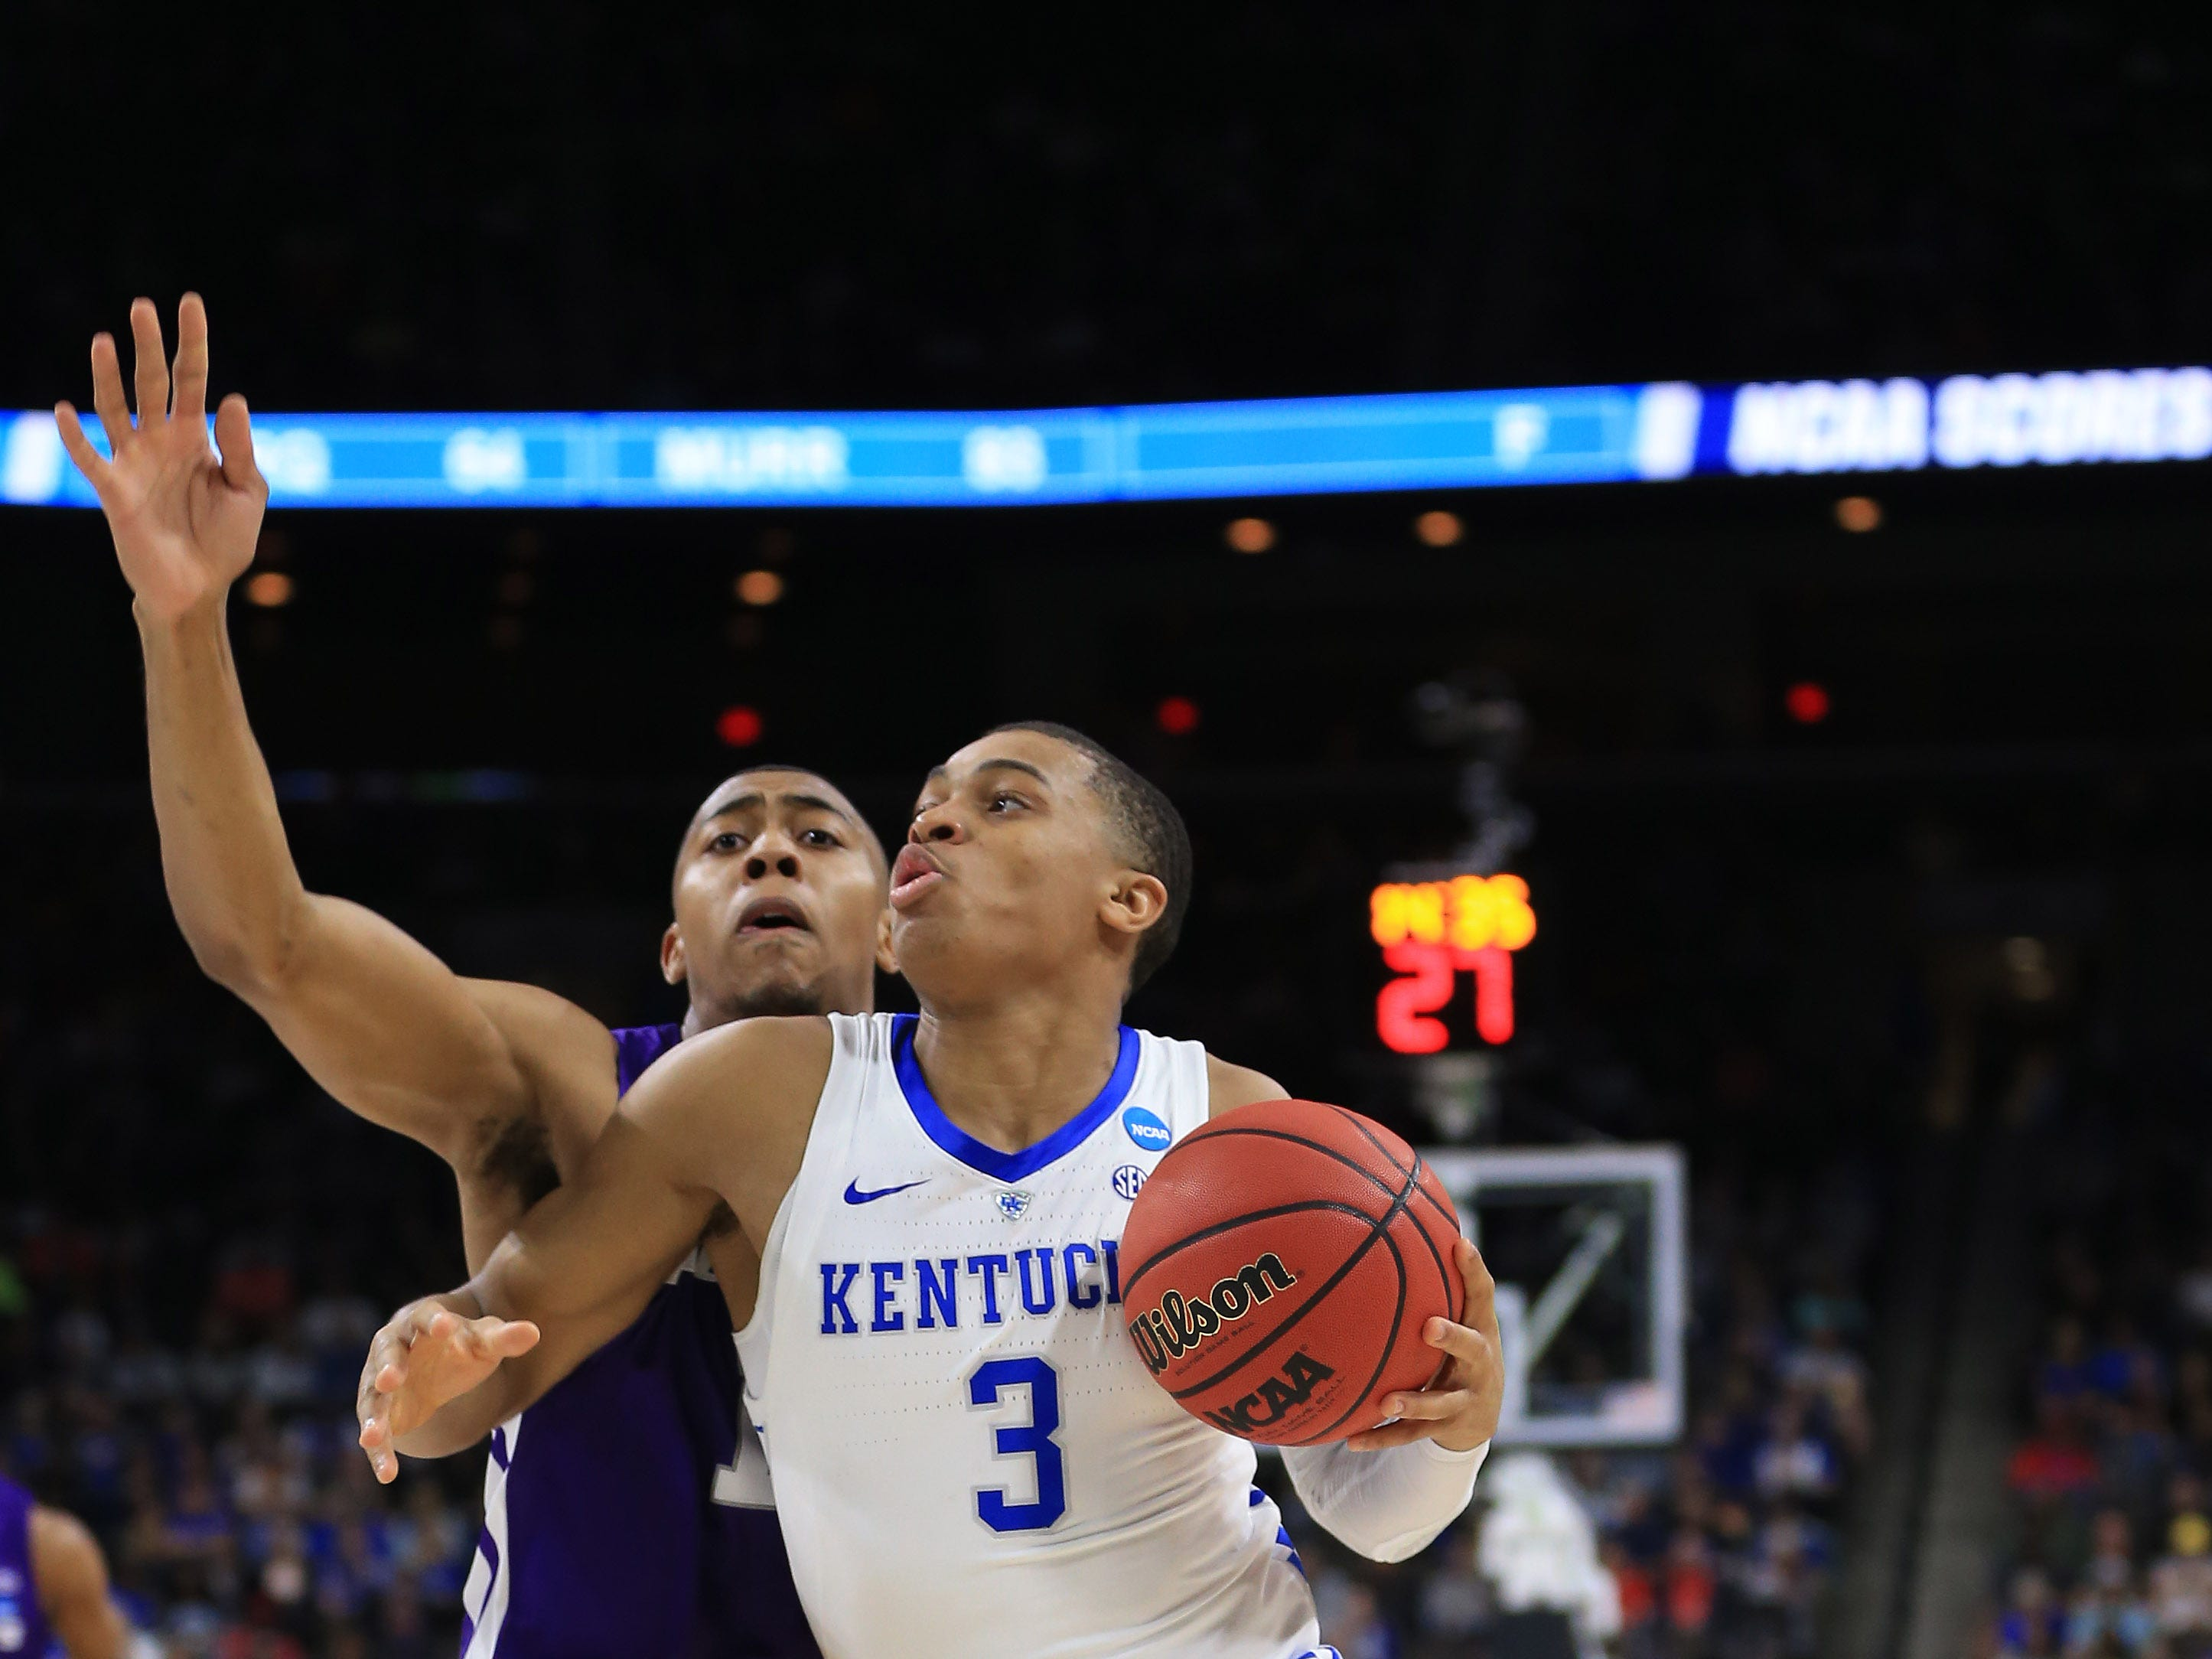 Mar 21, 2019; Jacksonville, FL, USA; Kentucky Wildcats guard Keldon Johnson (3) dribbles the ball as Abilene Christian Wildcats forward Jaren Lewis (1) defends during the first half in the first round of the 2019 NCAA Tournament at Jacksonville Veterans Memorial Arena. Mandatory Credit: Matt Stamey-USA TODAY Sports